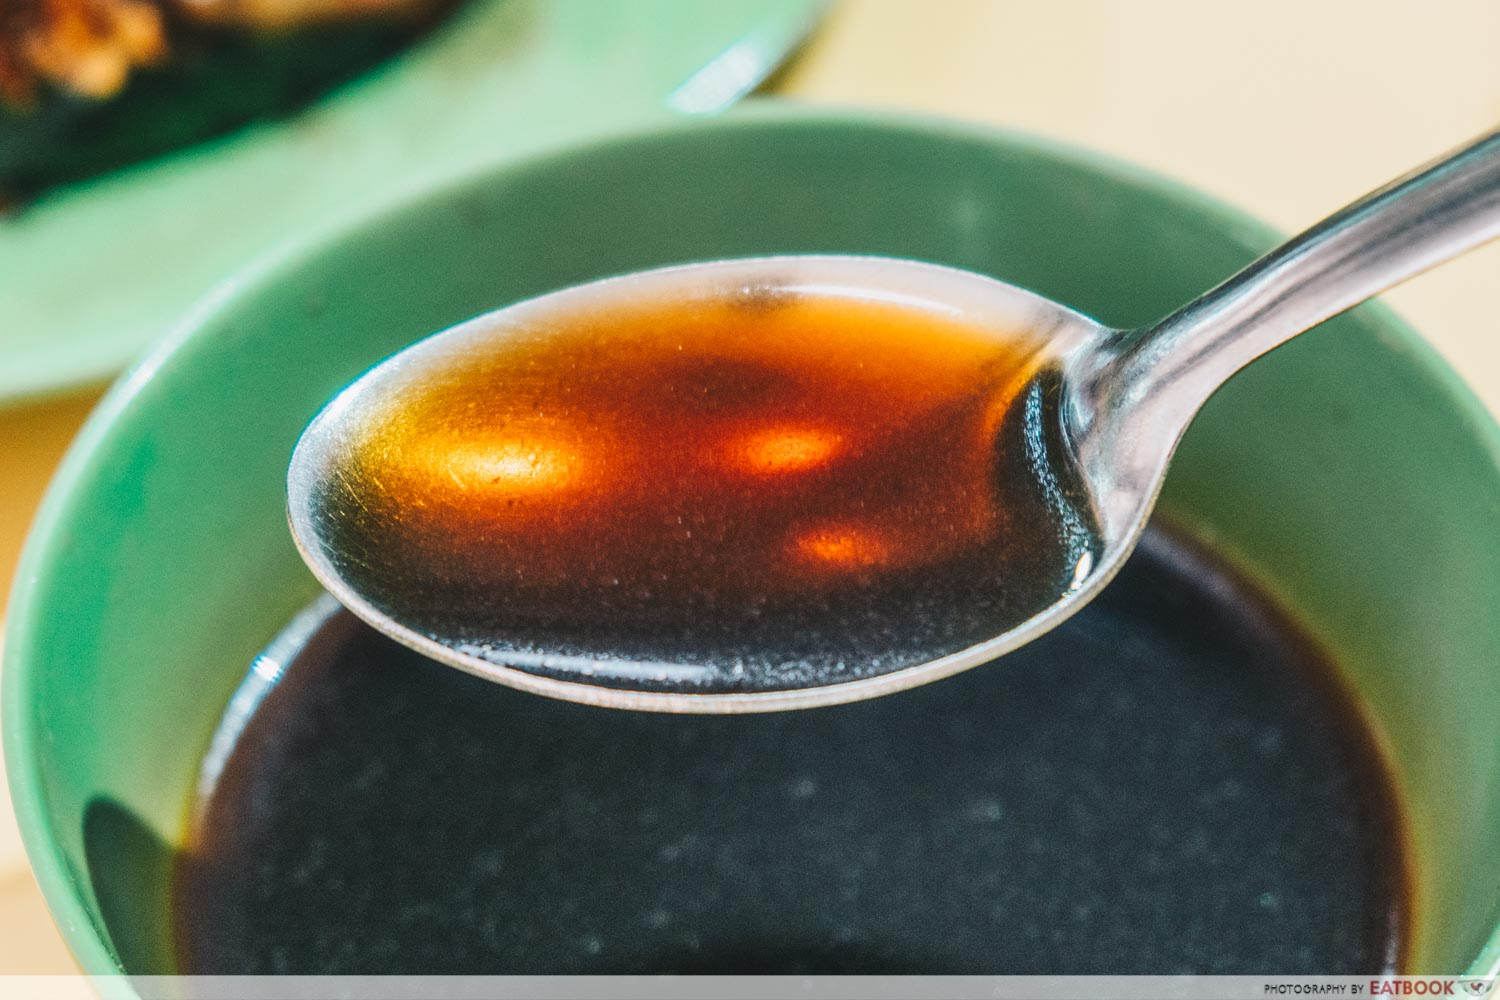 Kim Kitchen Braised Duck - Spoonful of herbal soup